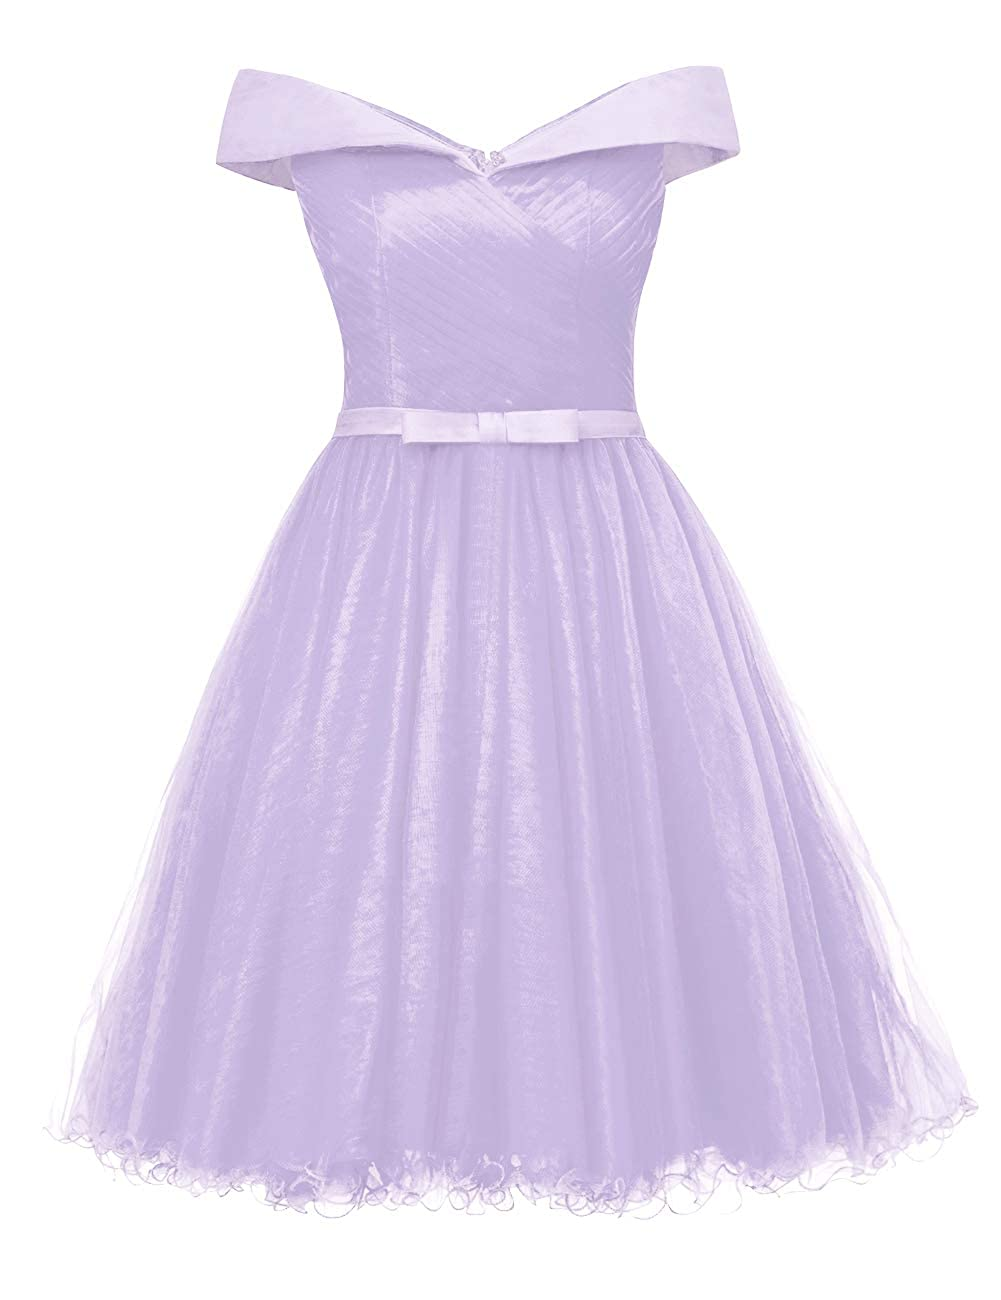 Lavender Uther Off The Shoulder Prom Homecoming Dresses Knee Length Cocktail Dress Tulle Gown